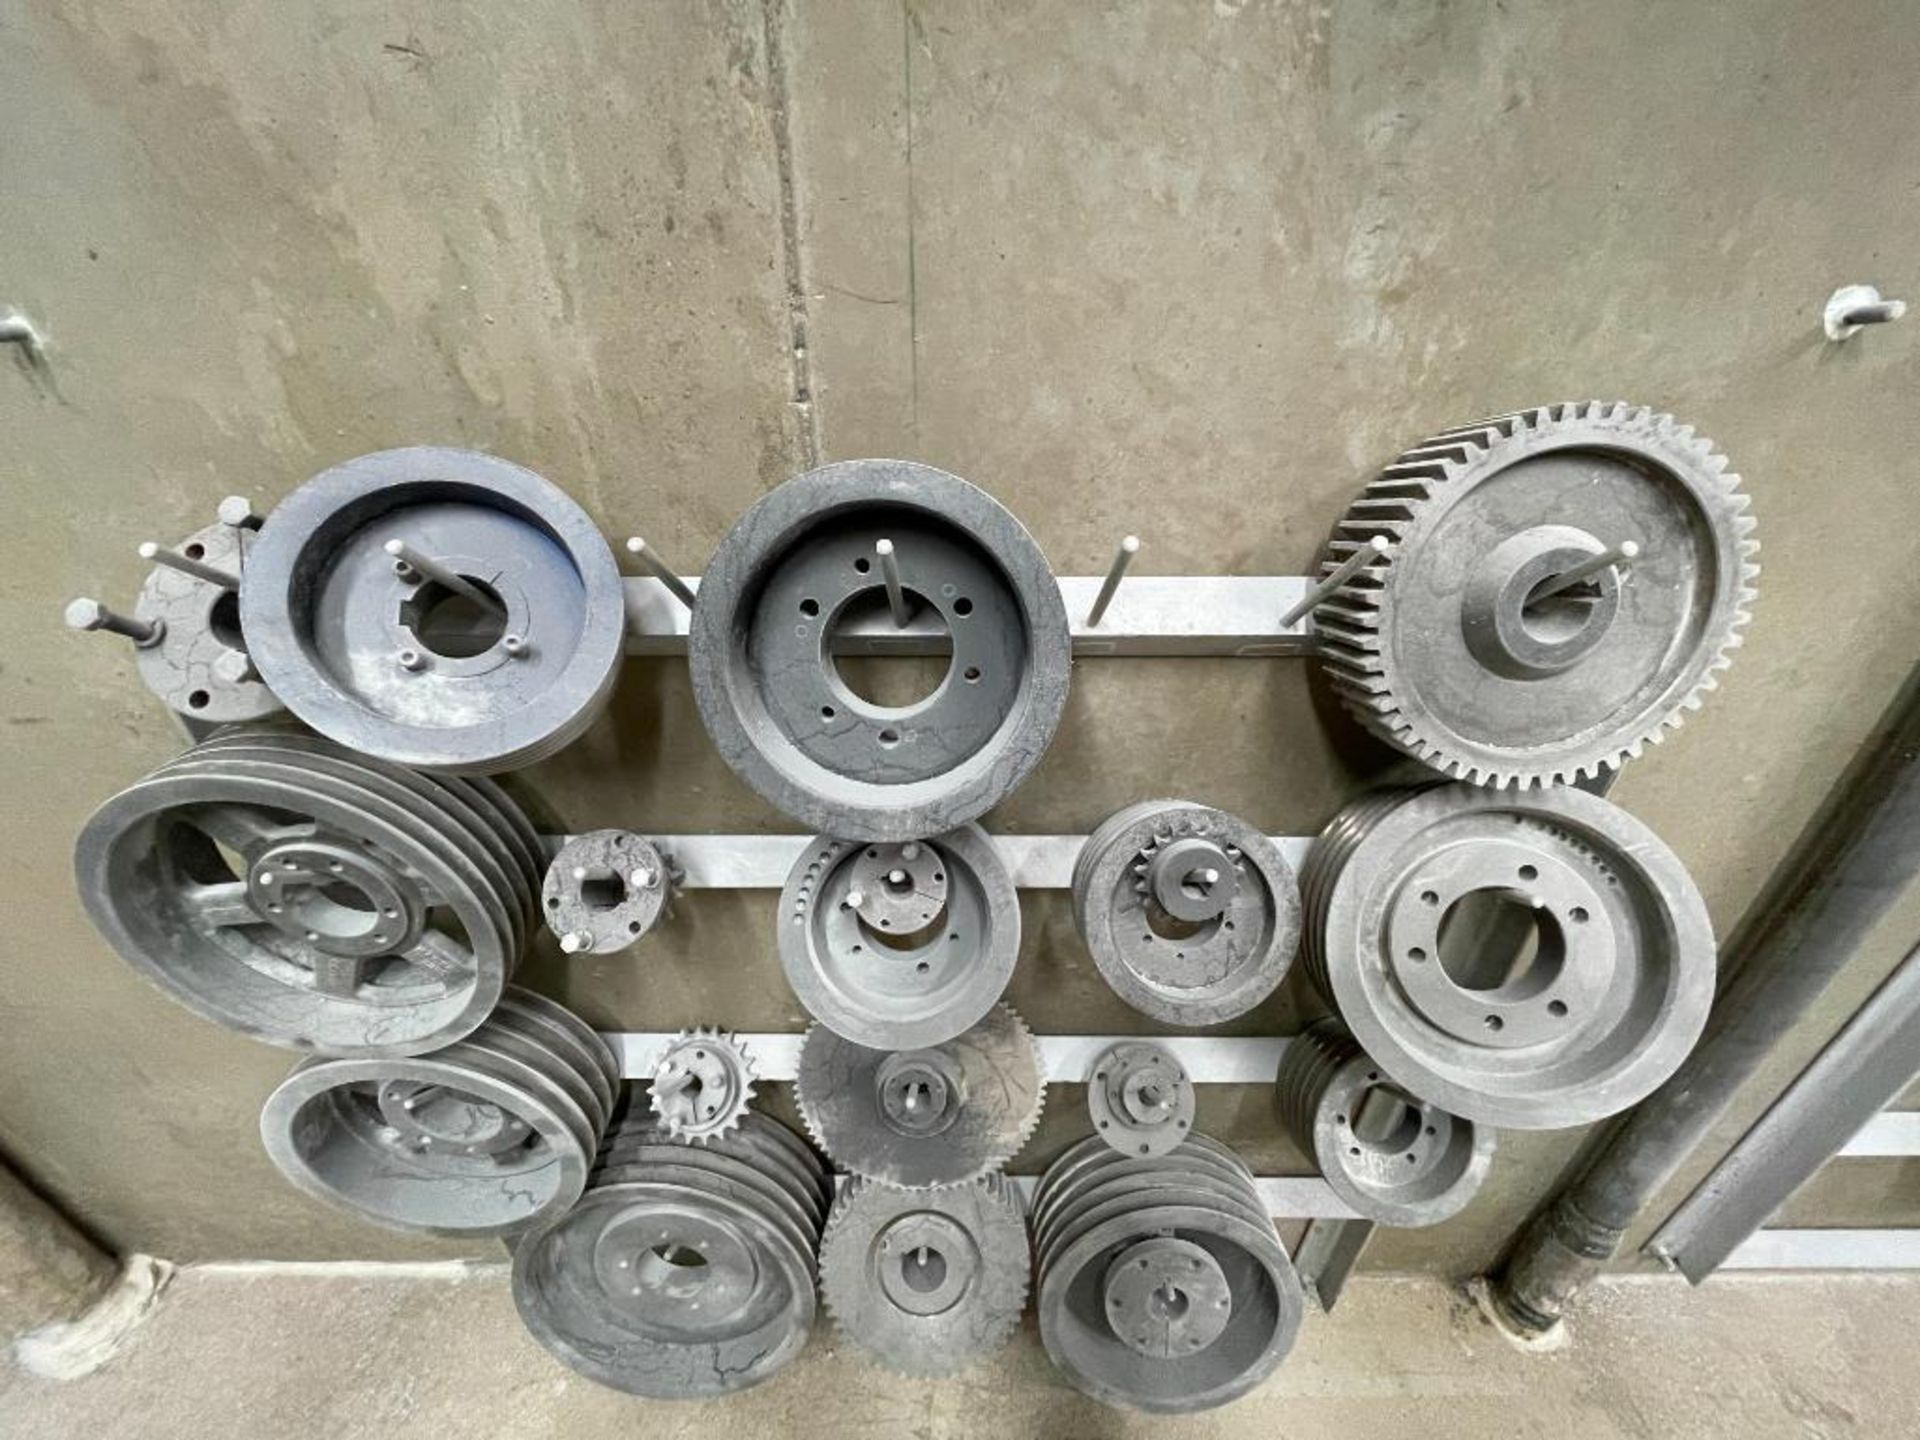 gears and pulleys - Image 7 of 17